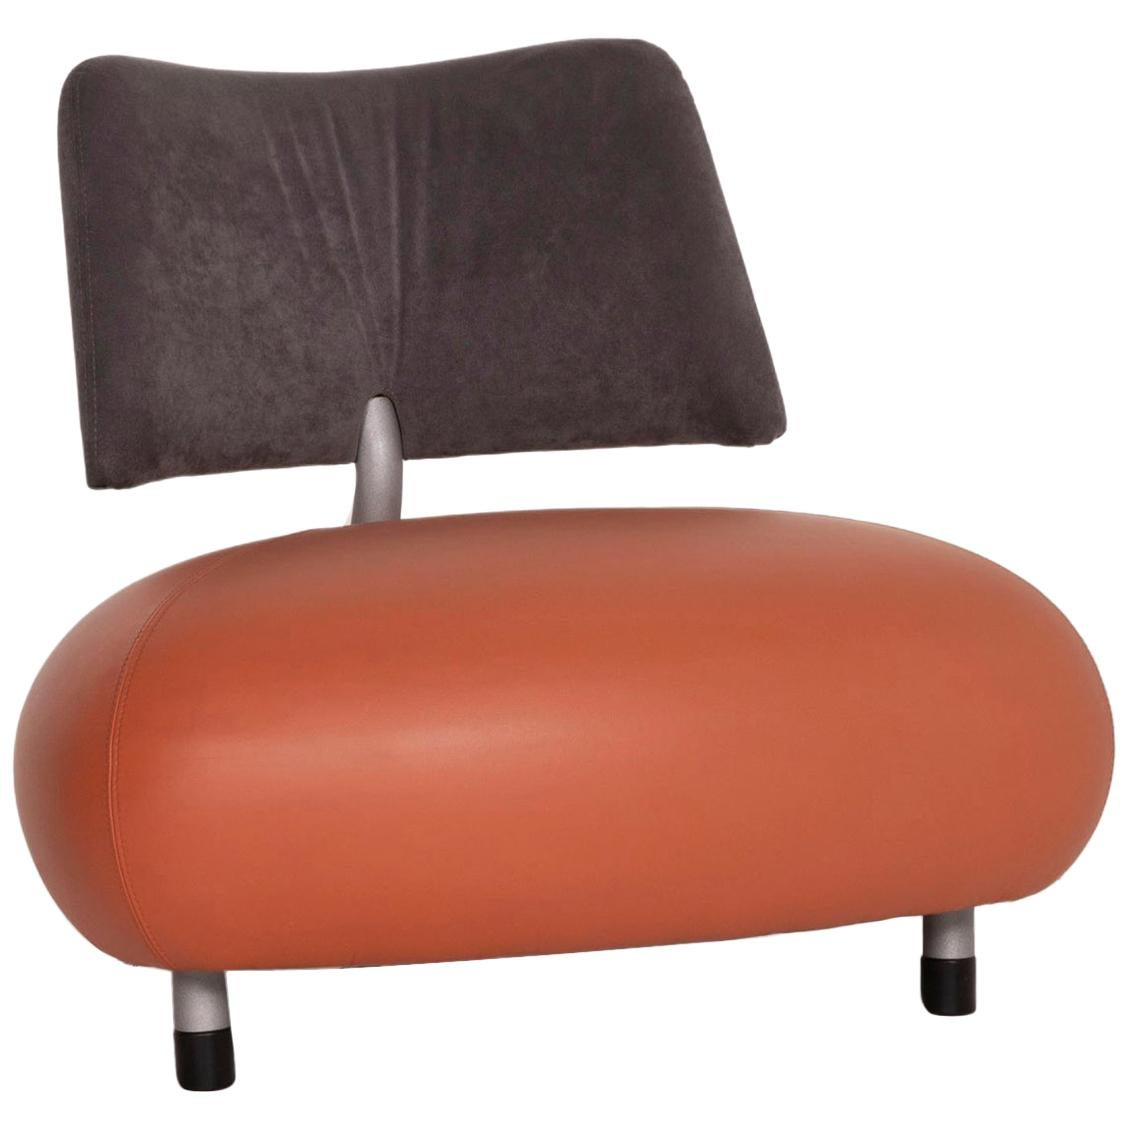 Leolux Pallone Leather Armchair Orange Fabric